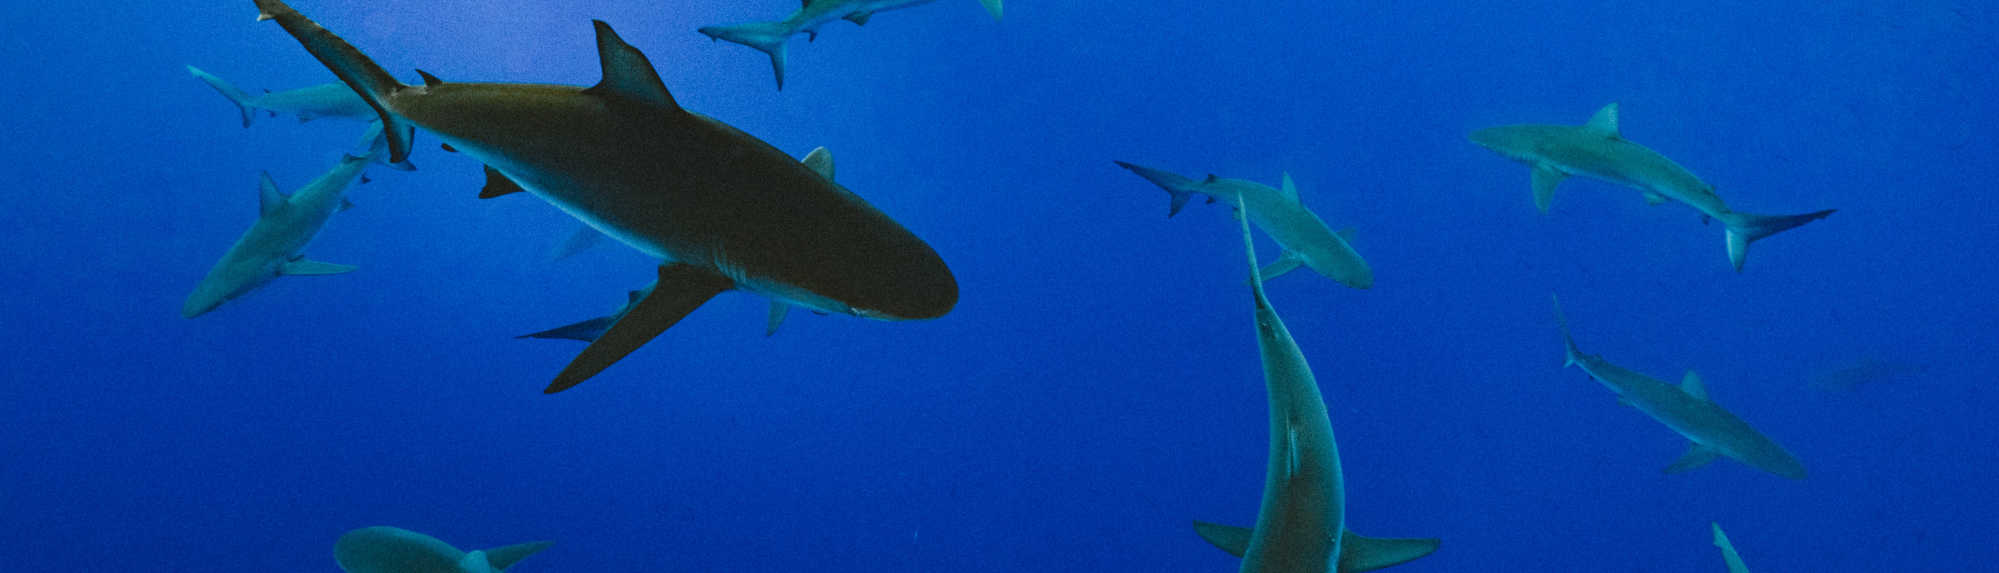 Are There Sharks in the Great Barrier Reef?